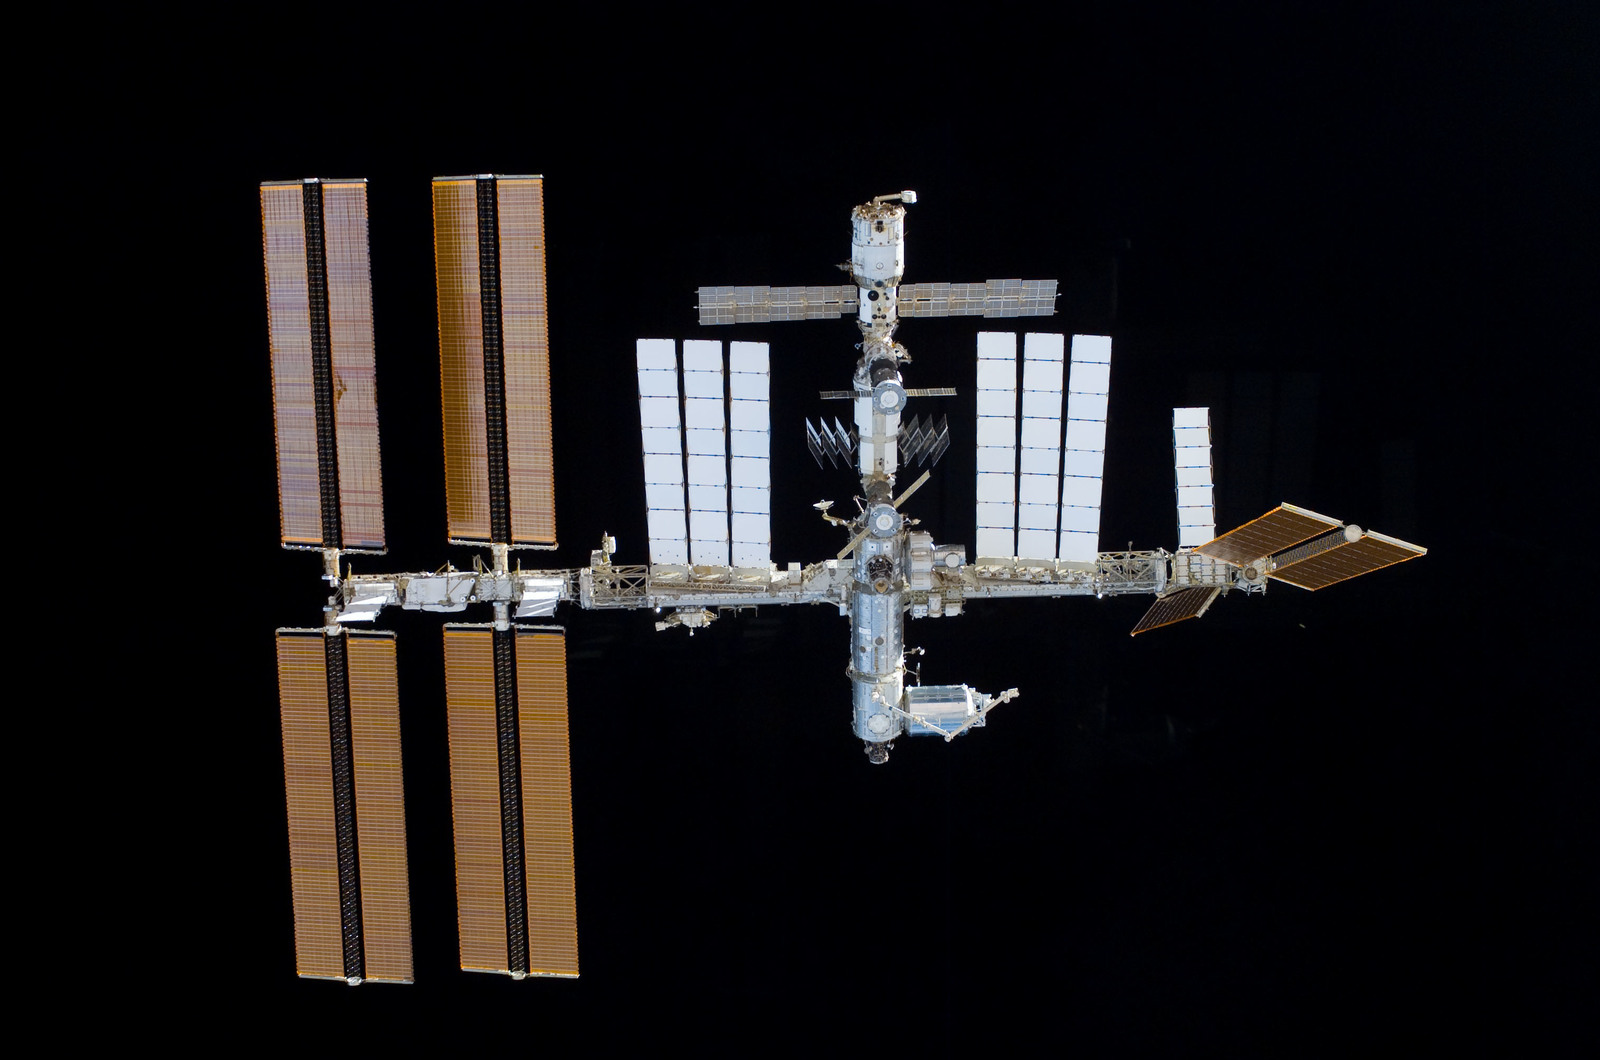 S122E011024 - STS-122 - View of ISS after STS-122 Undocking